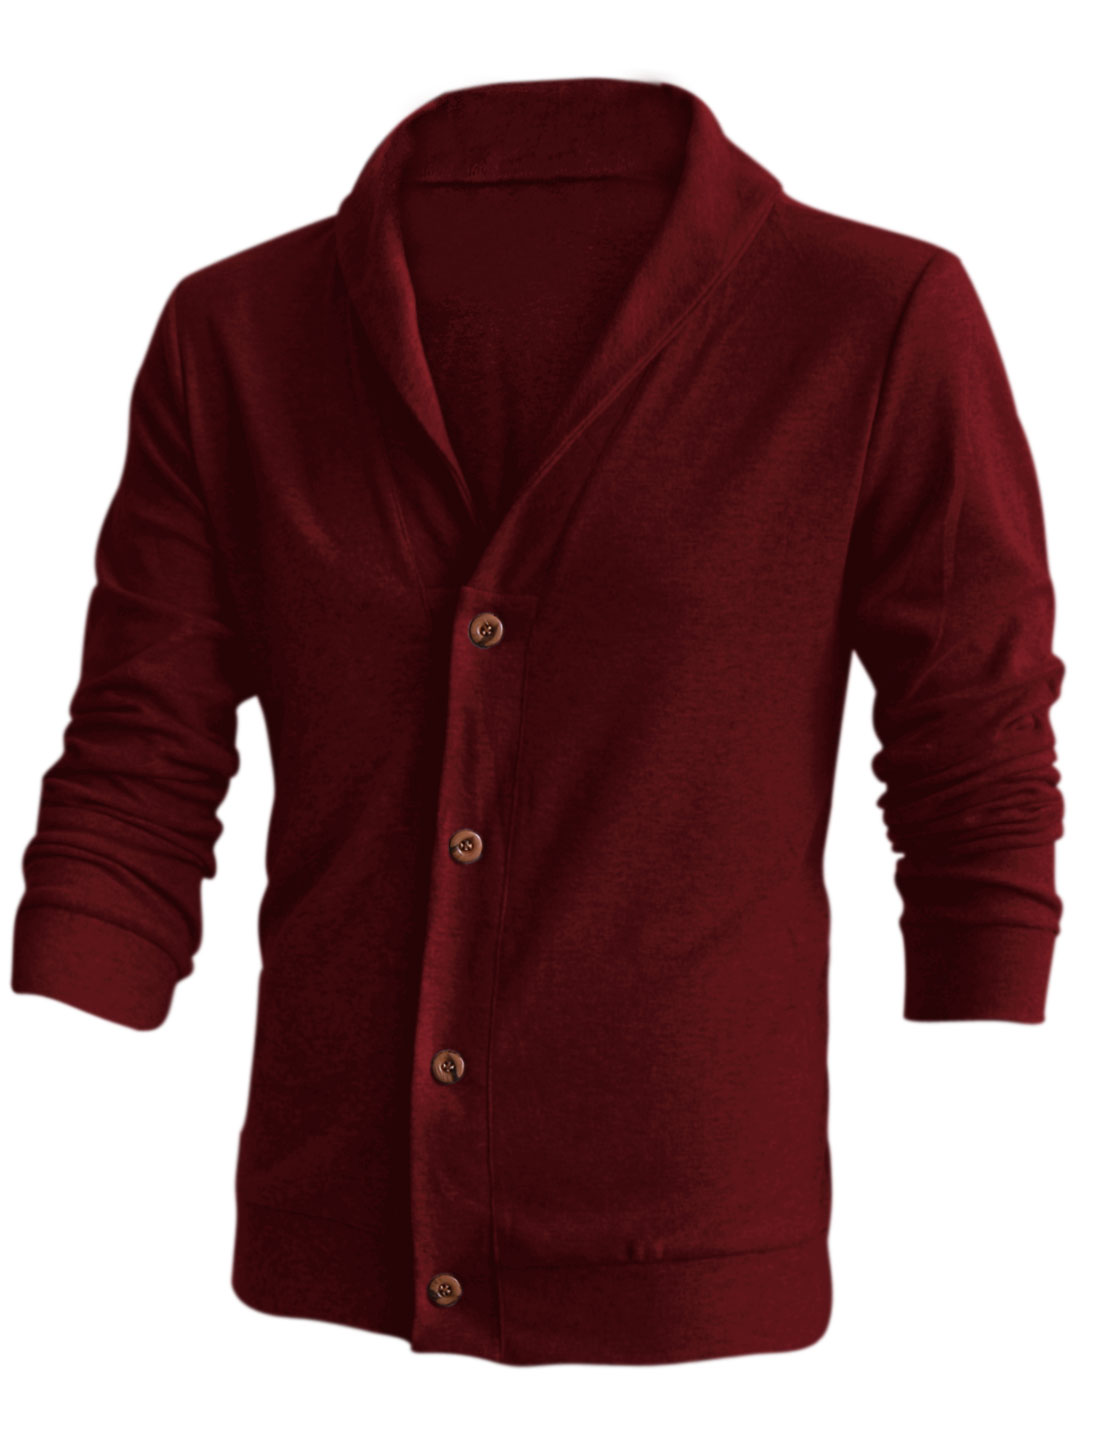 Slim Fit Casual Shawl Collar Fashion Cardigan for Men Burgundy M